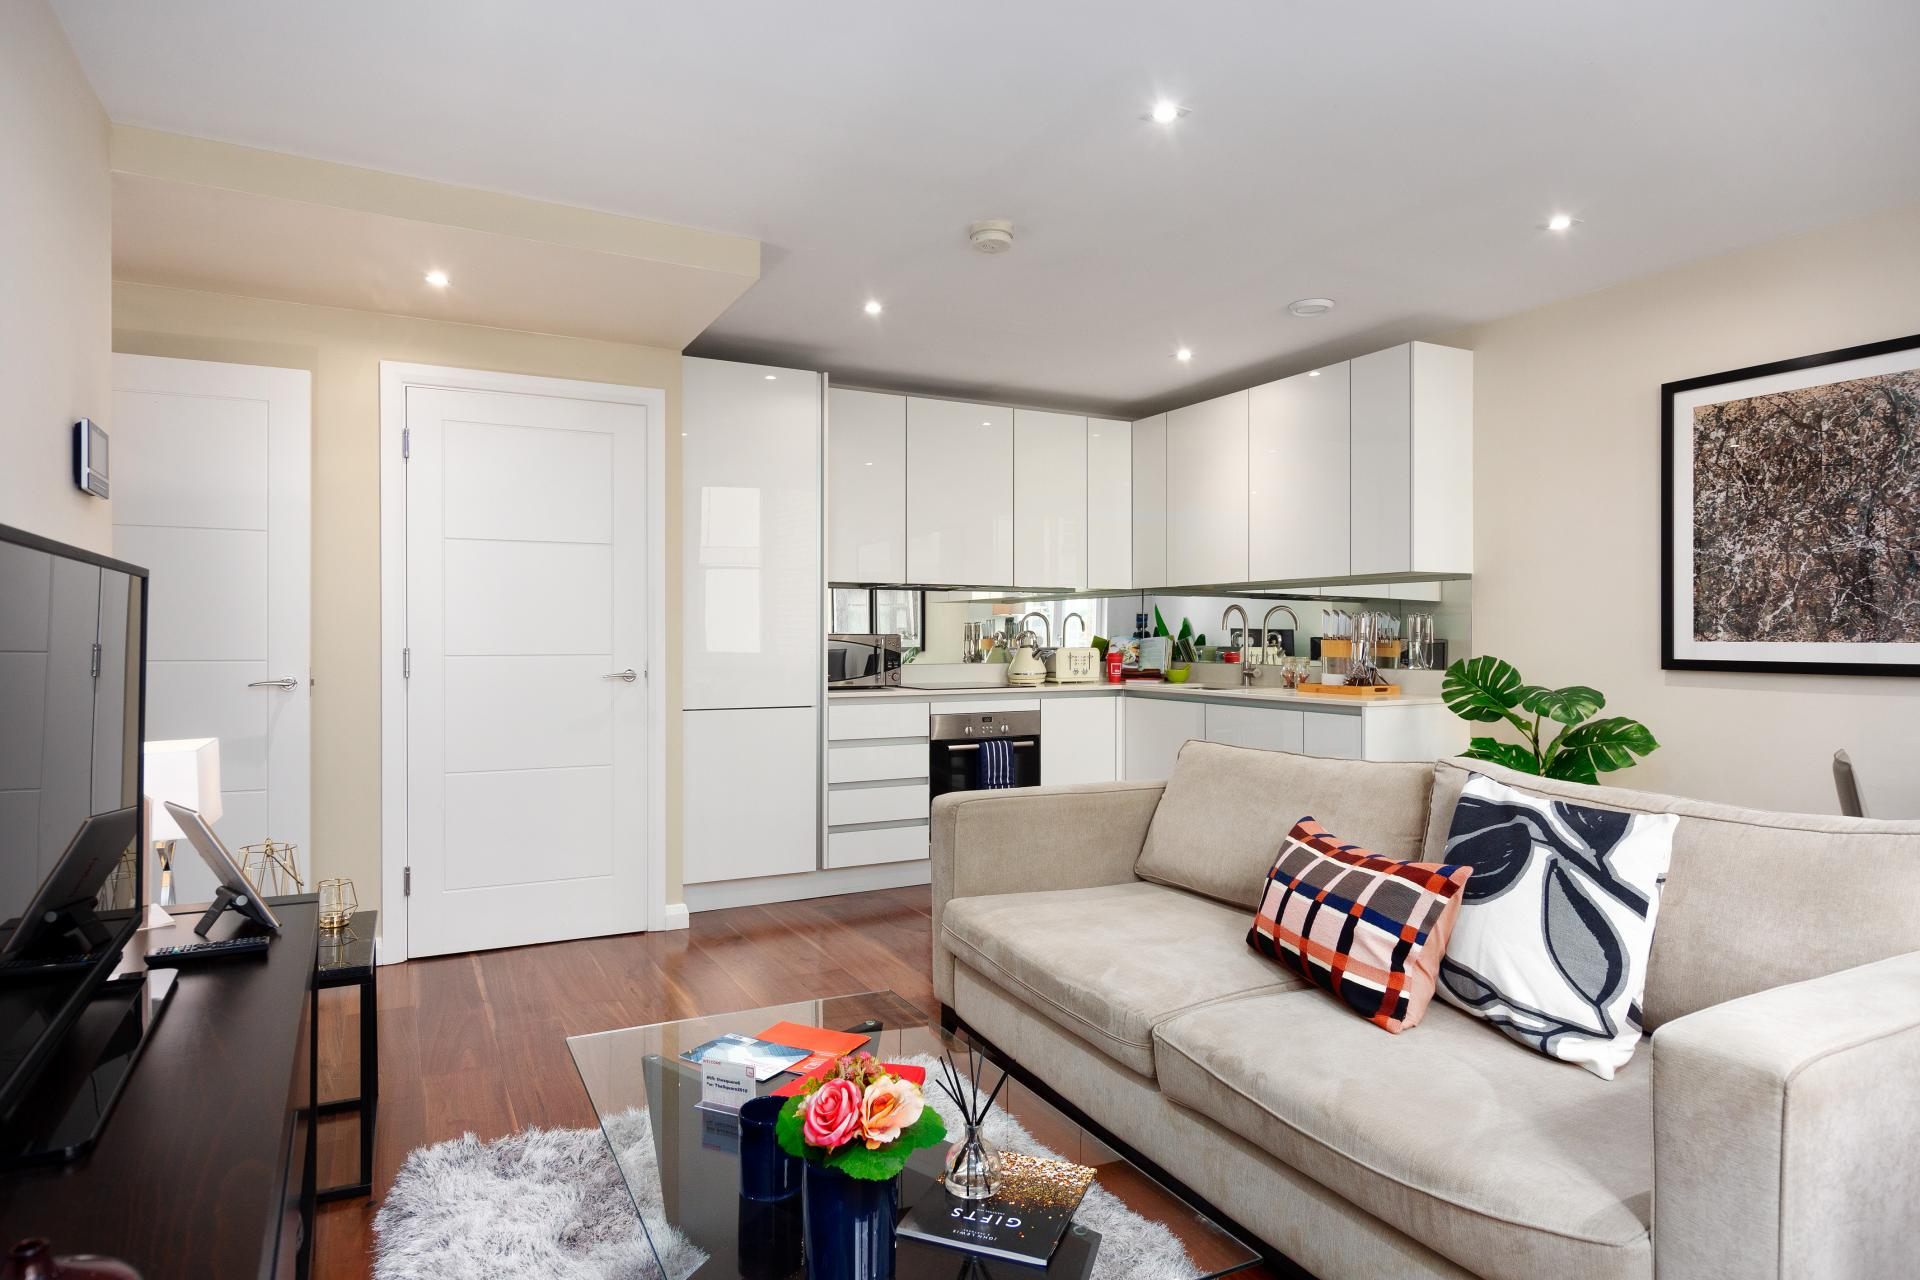 TV at Chancery Lane Apartment, Chancery Lane, London - Citybase Apartments